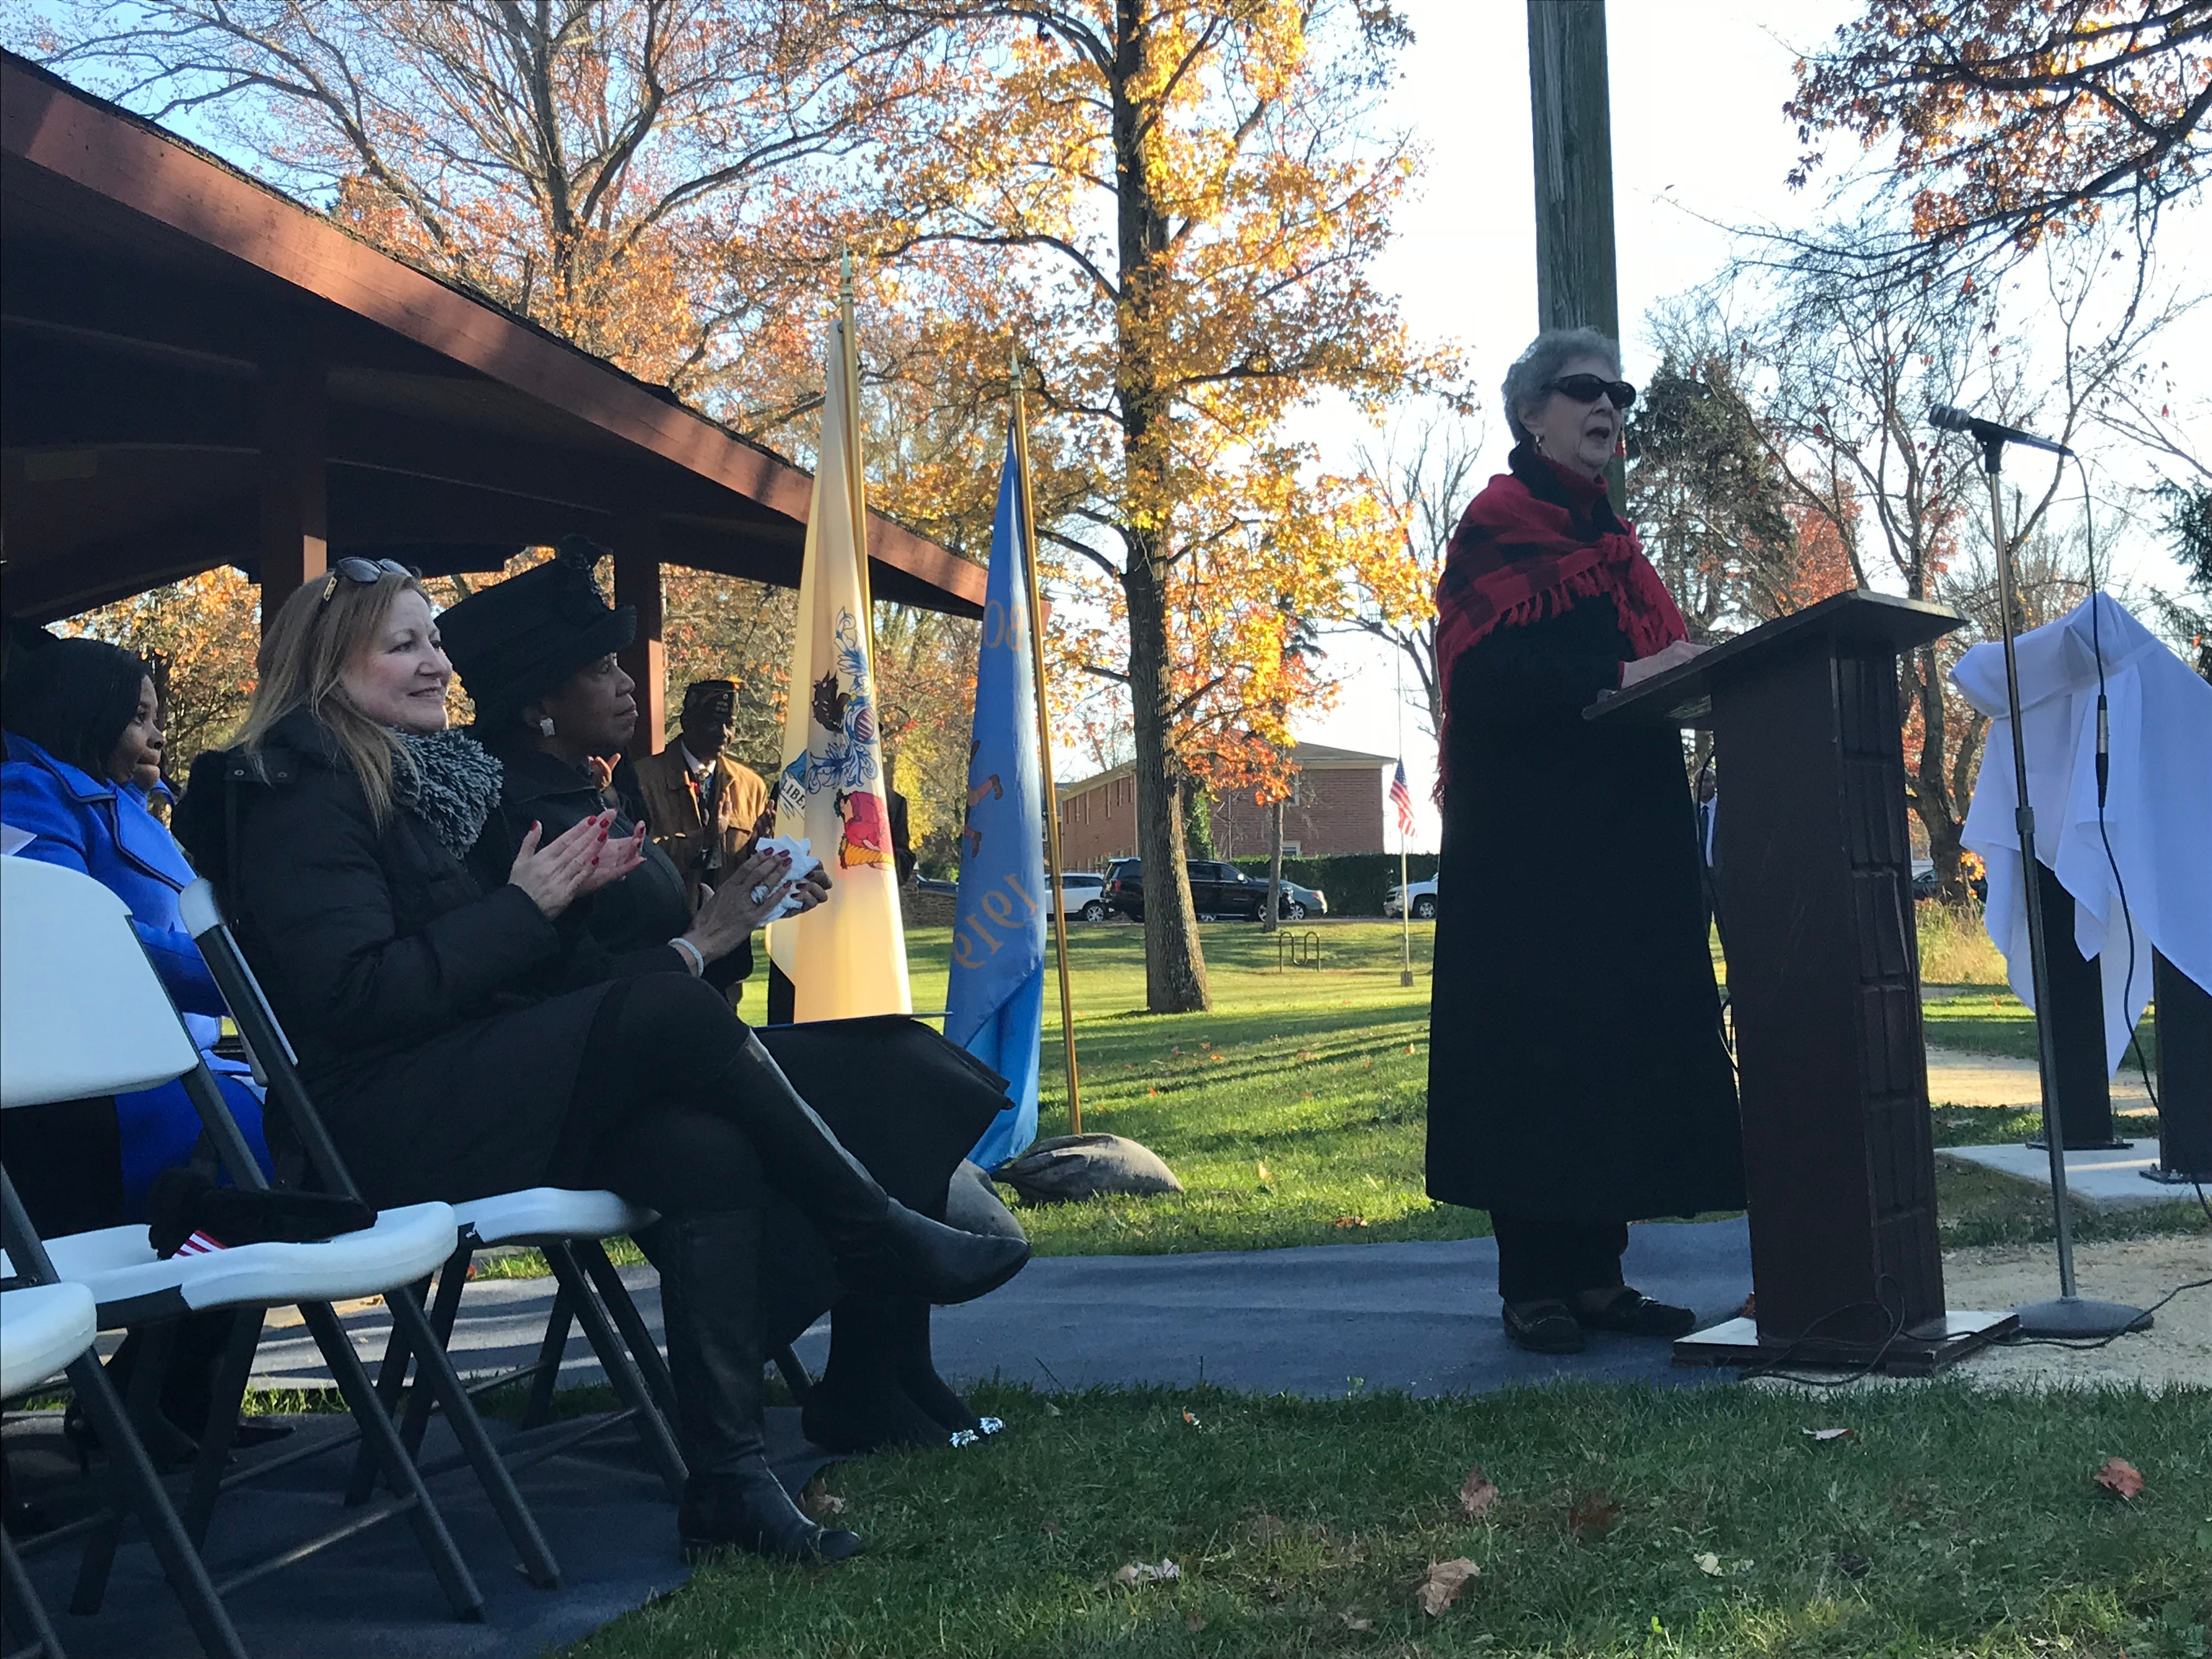 Freehold Borough councilwoman Sharon Shutzer, right, announced the guests at the Veterans Park re-dedication ceremony, including (left) Assemblywoman Joann Downey and Lt. Gov. Sheila Oliver. The ceremony commemorated the six Lewis brothers from Freehold Borough who served in World War II.